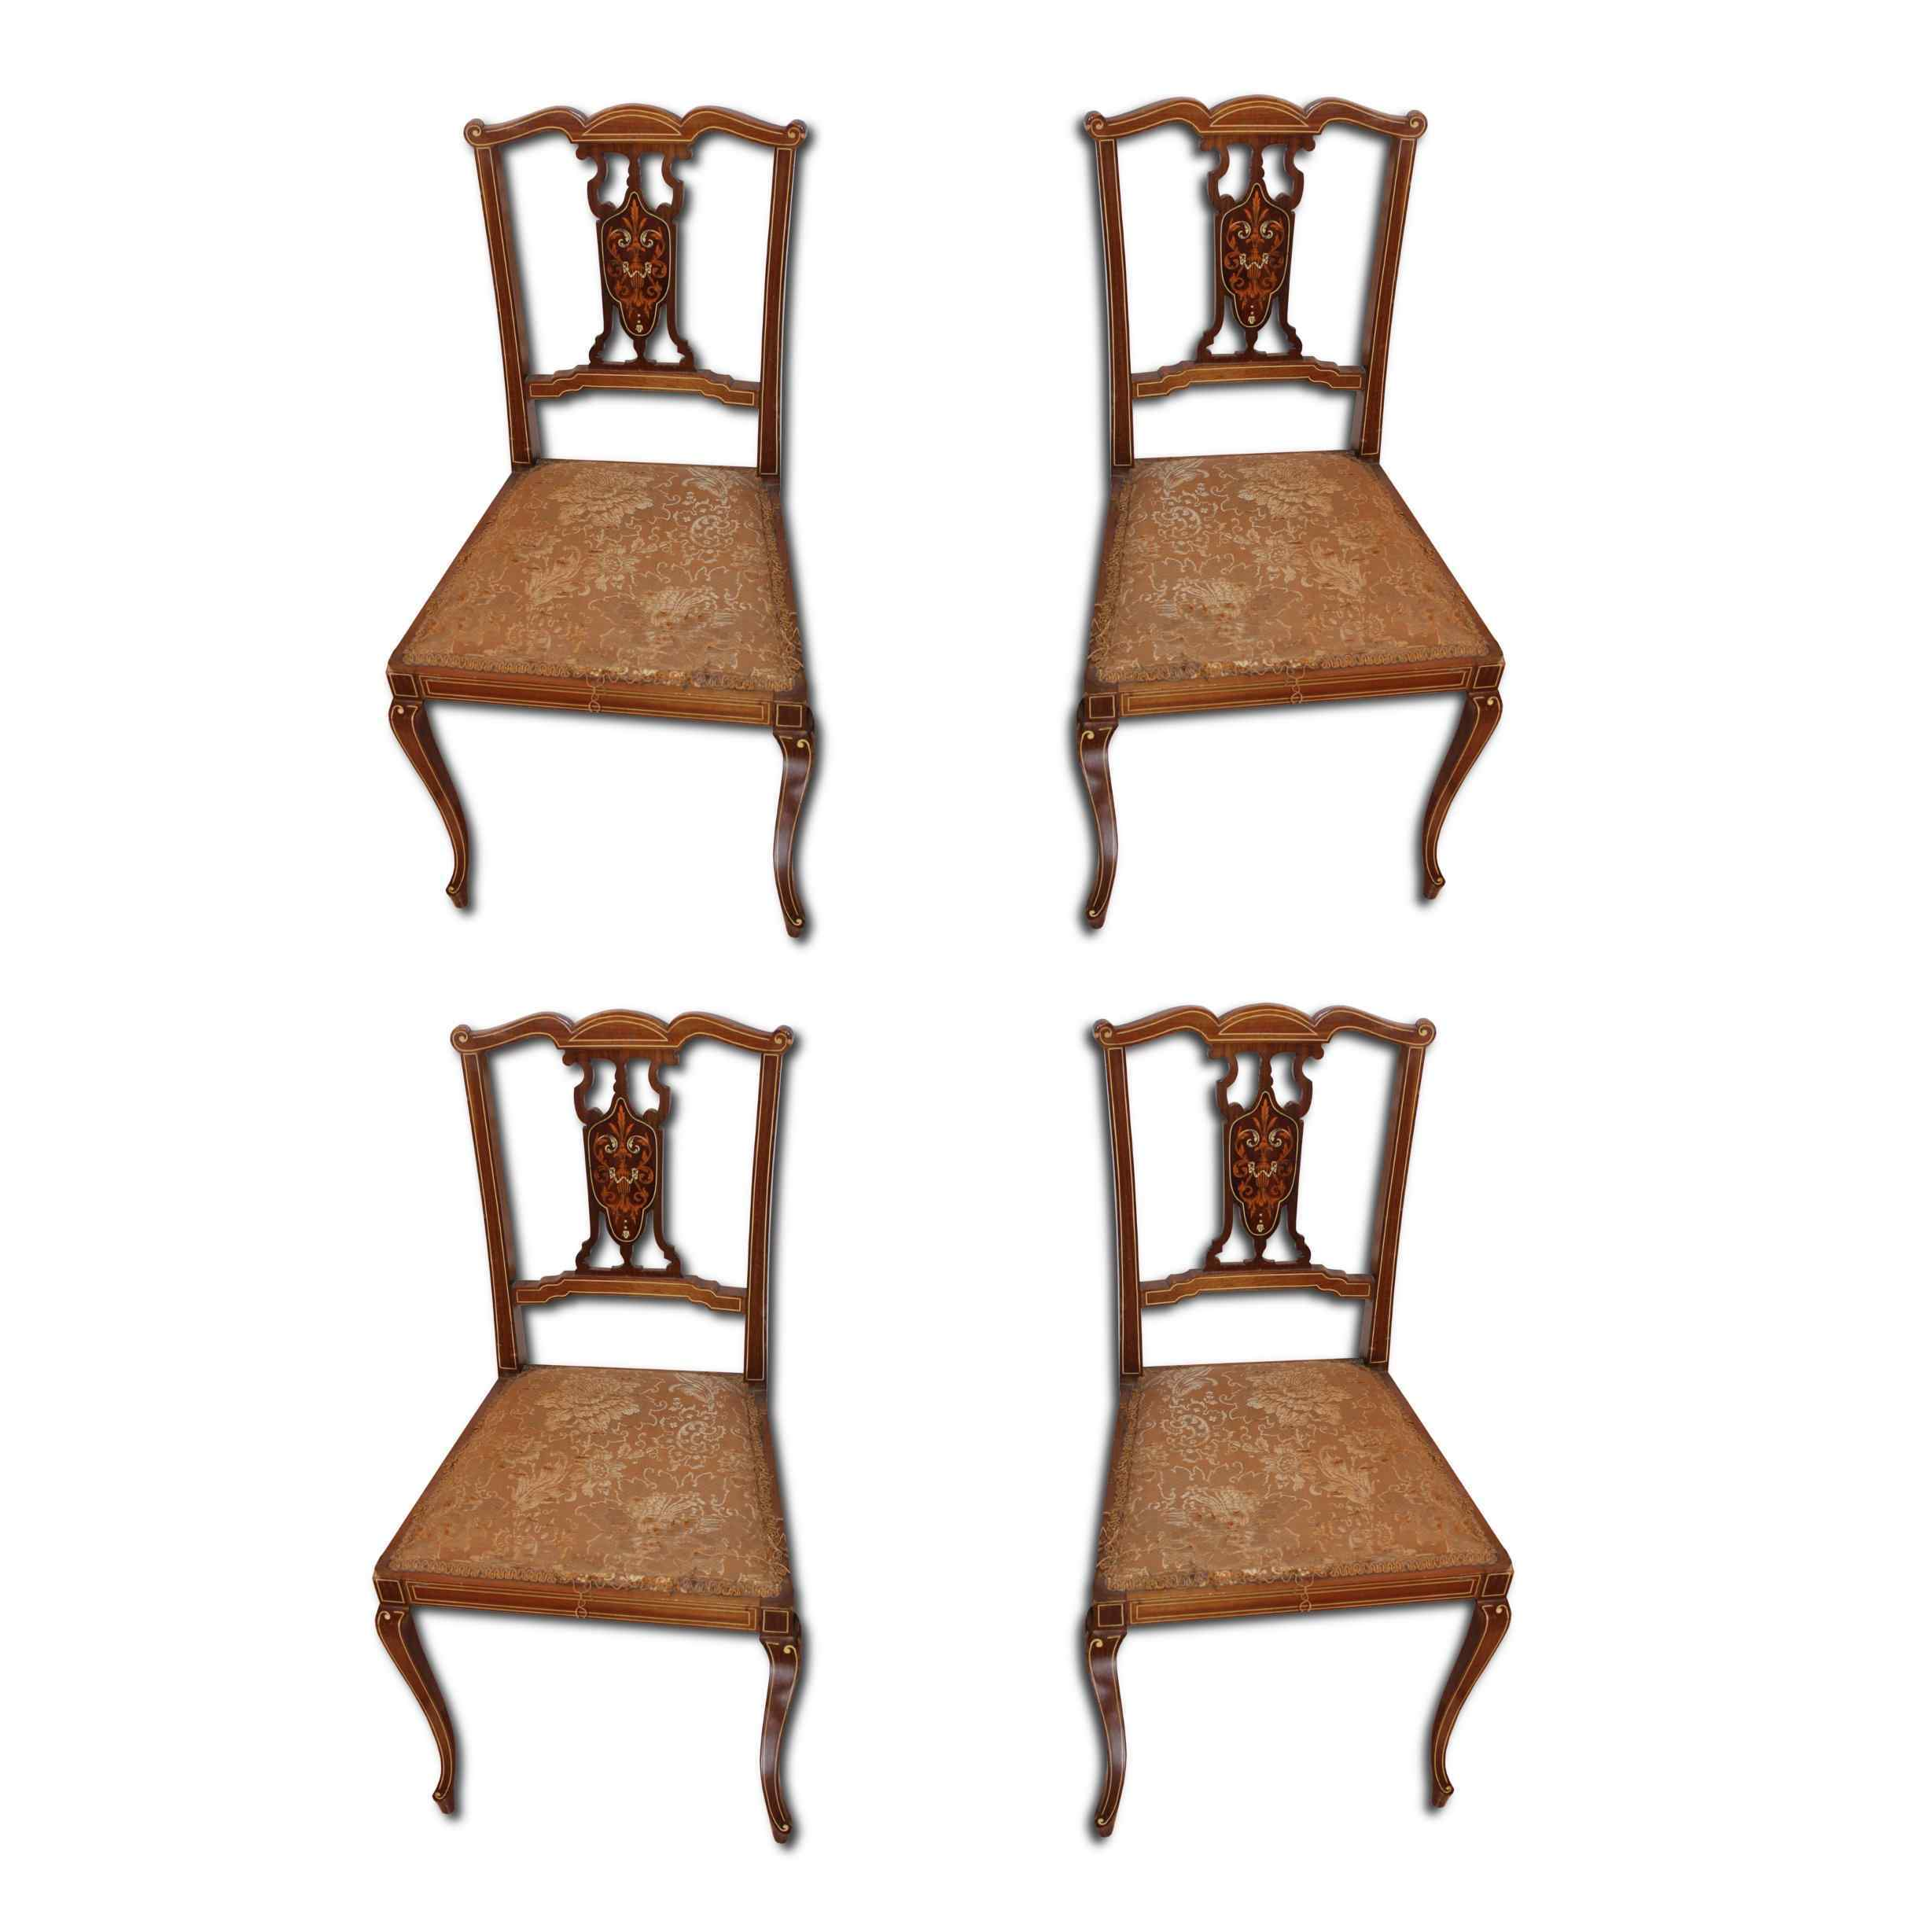 English antique chairs